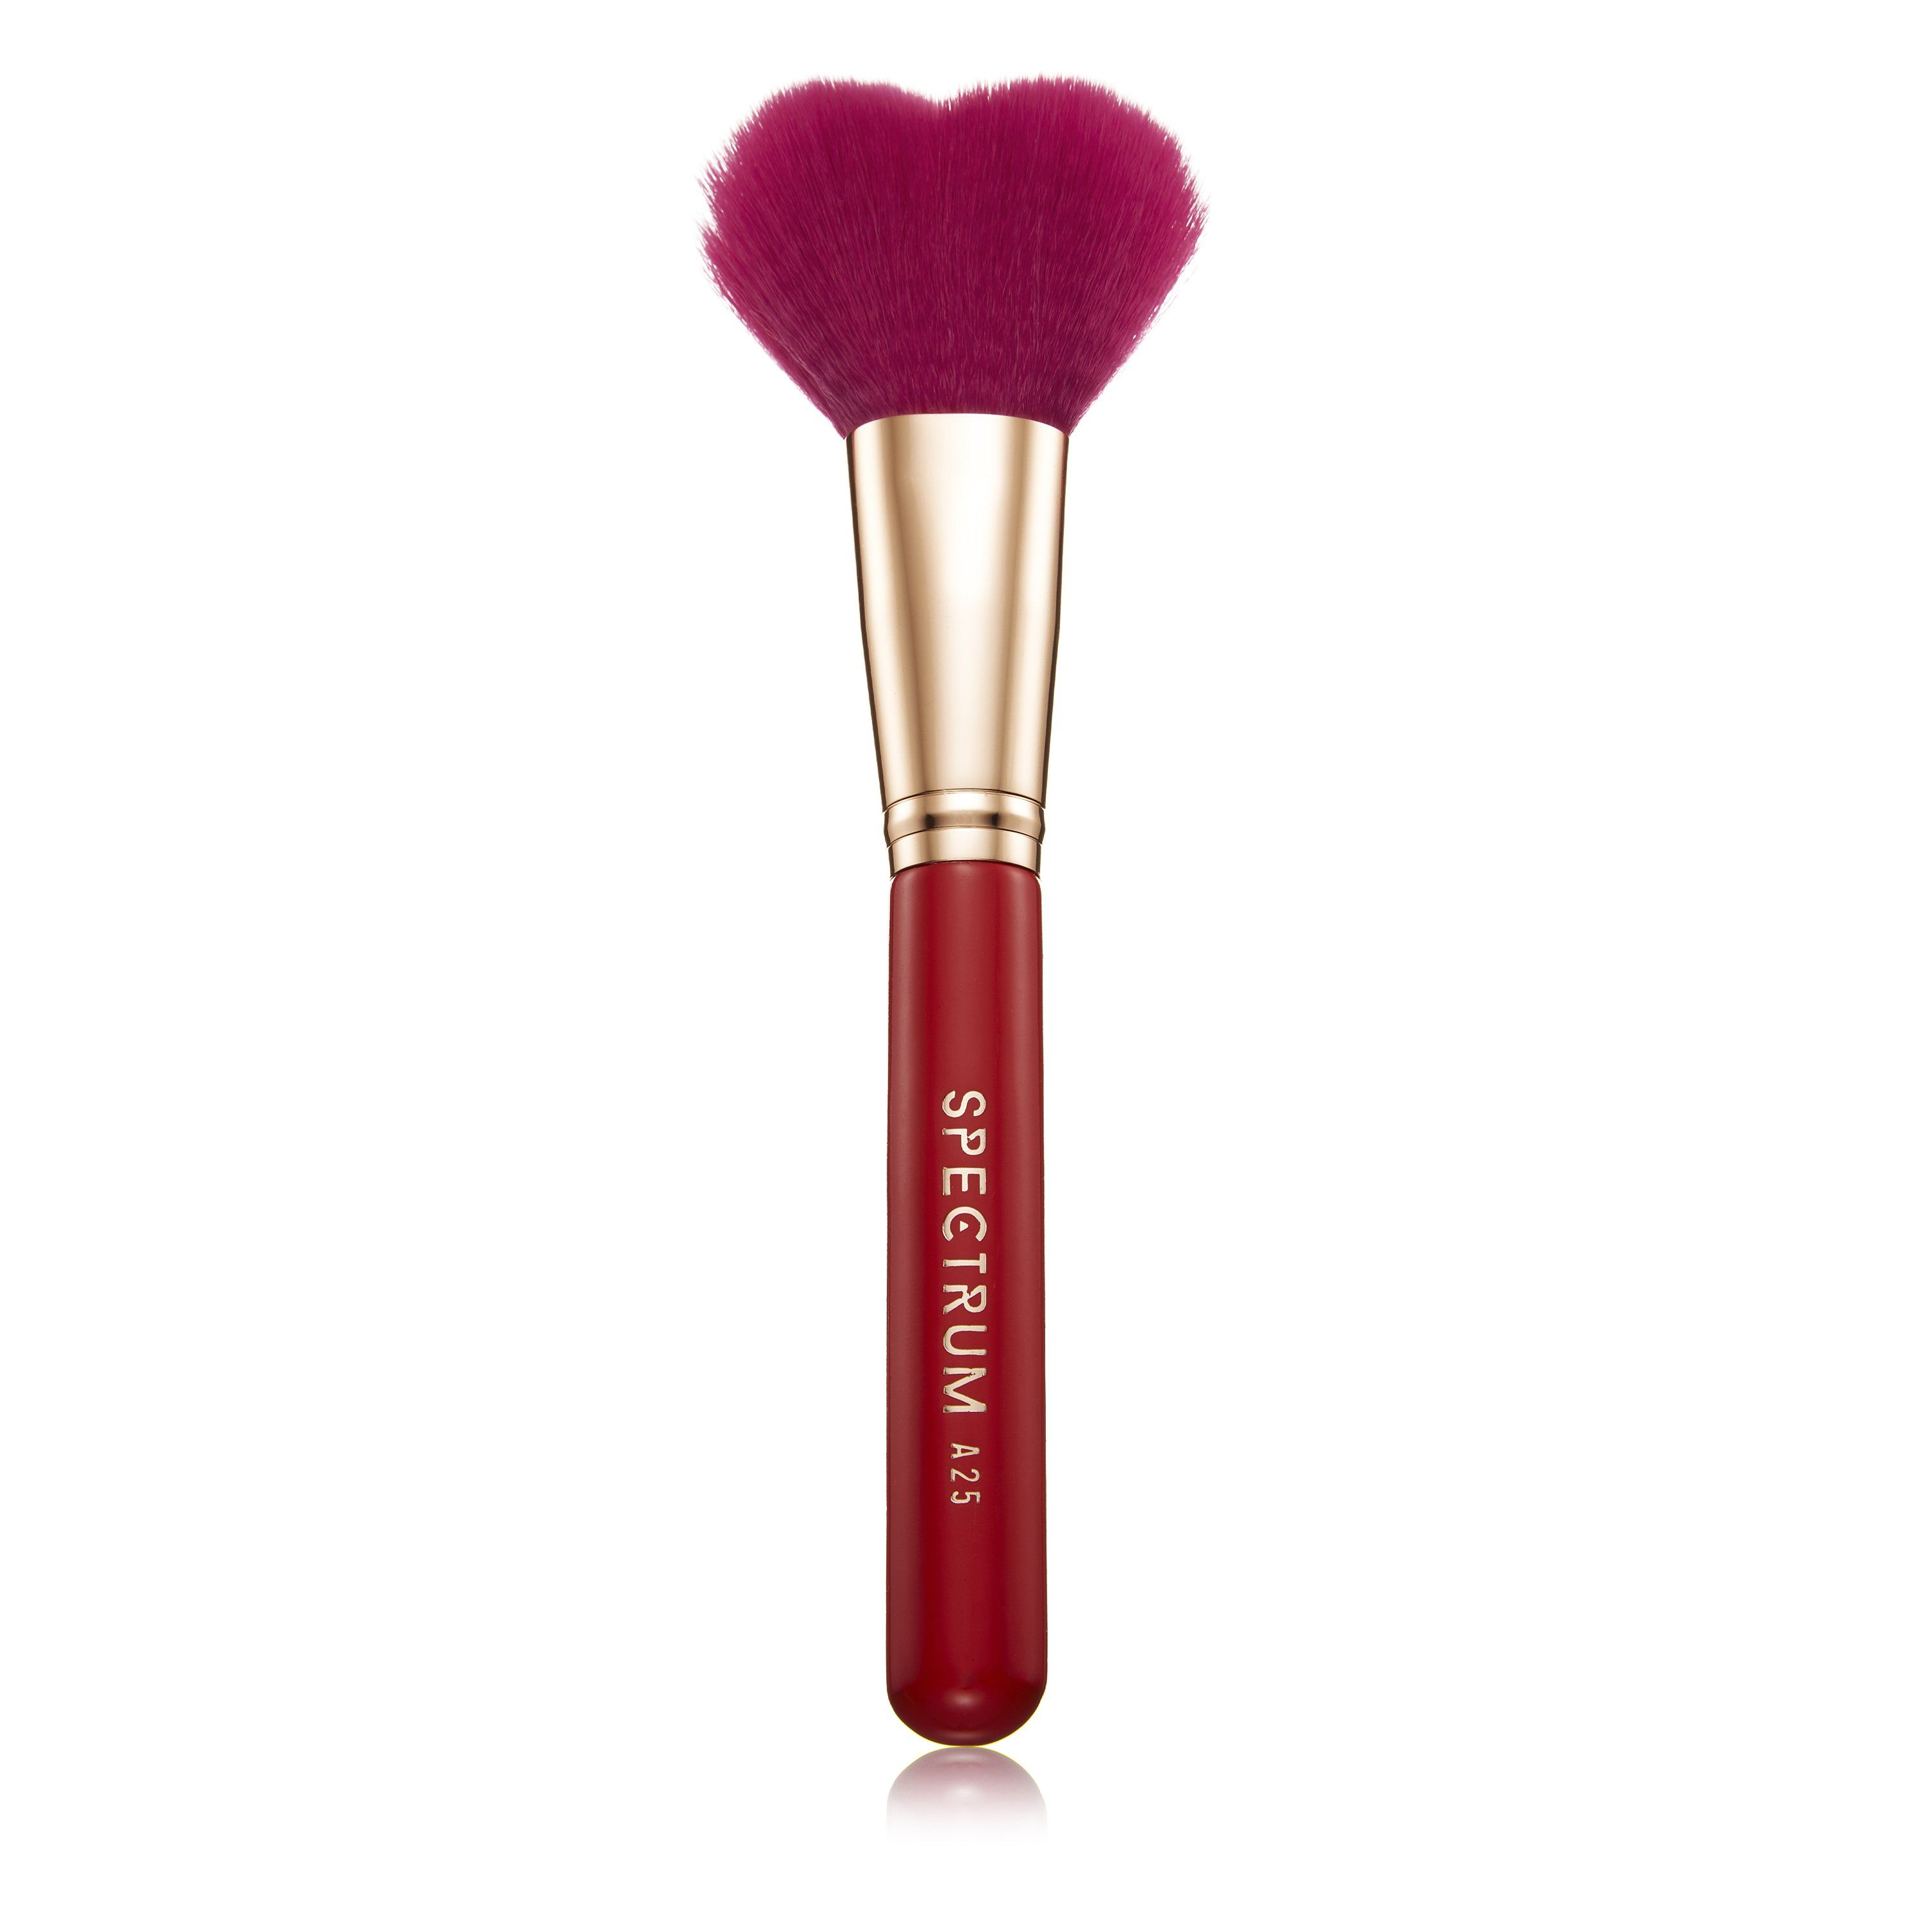 A25 Sweetheart Essential makeup brushes, Popsugar beauty